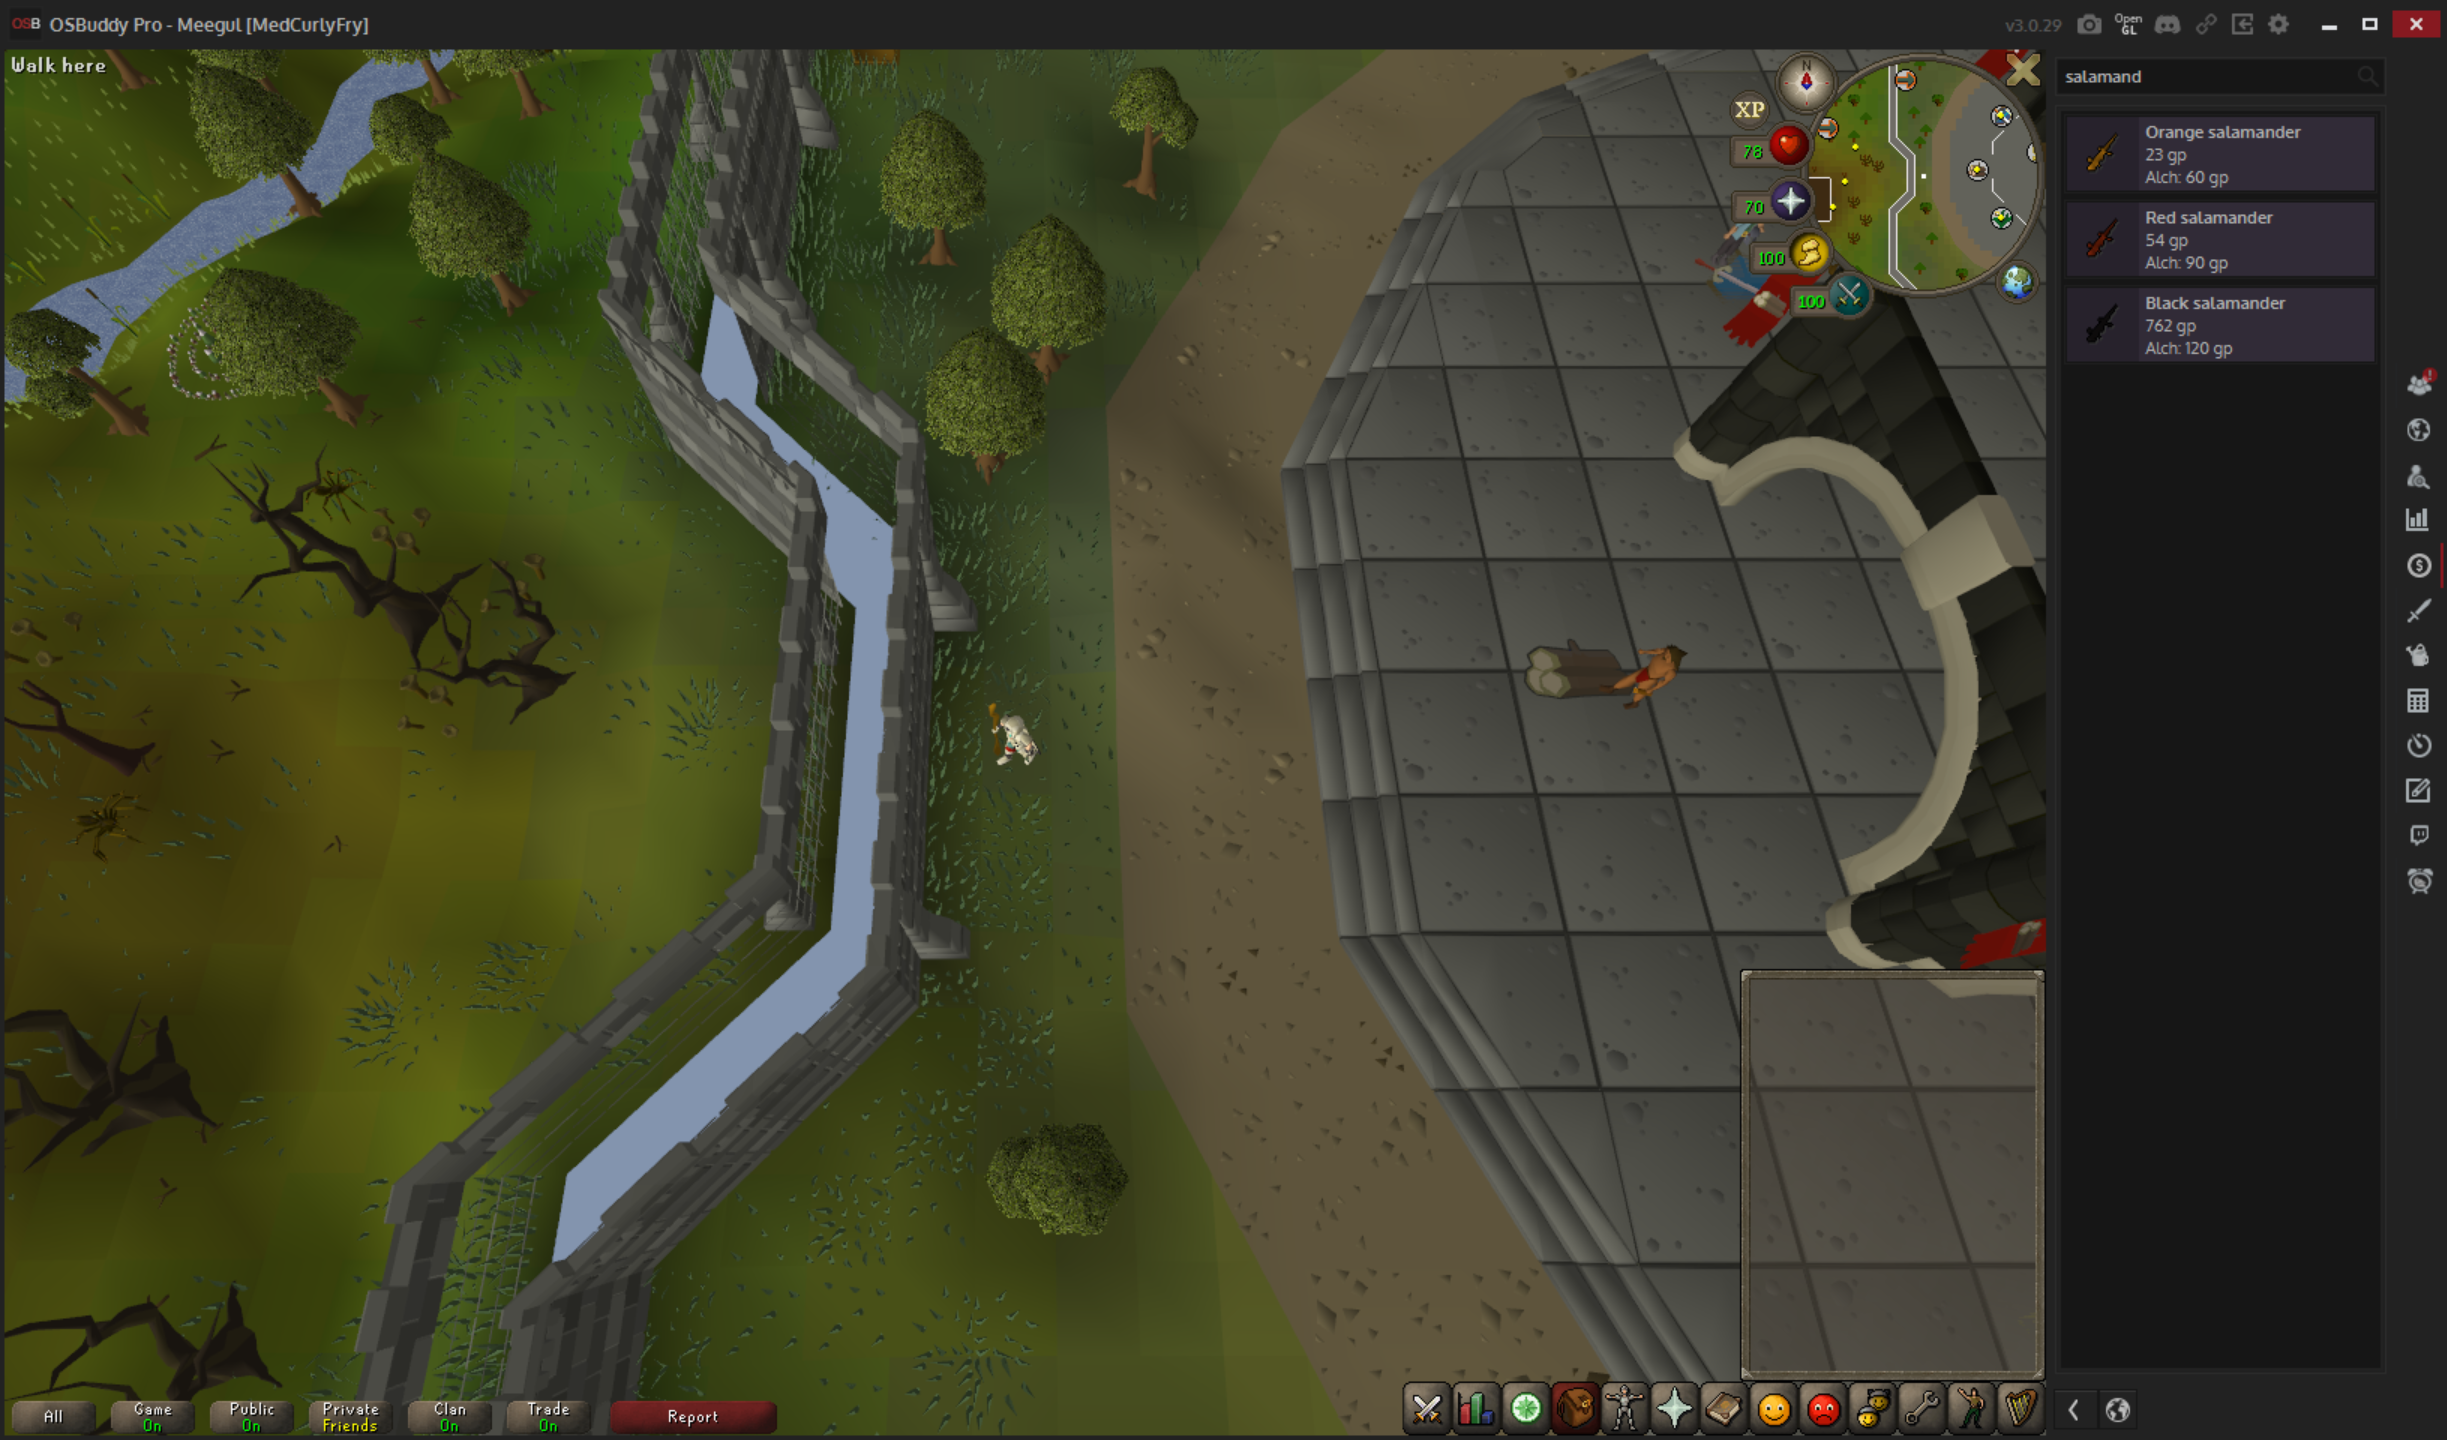 The roof of the wall surrounding the GE does not render